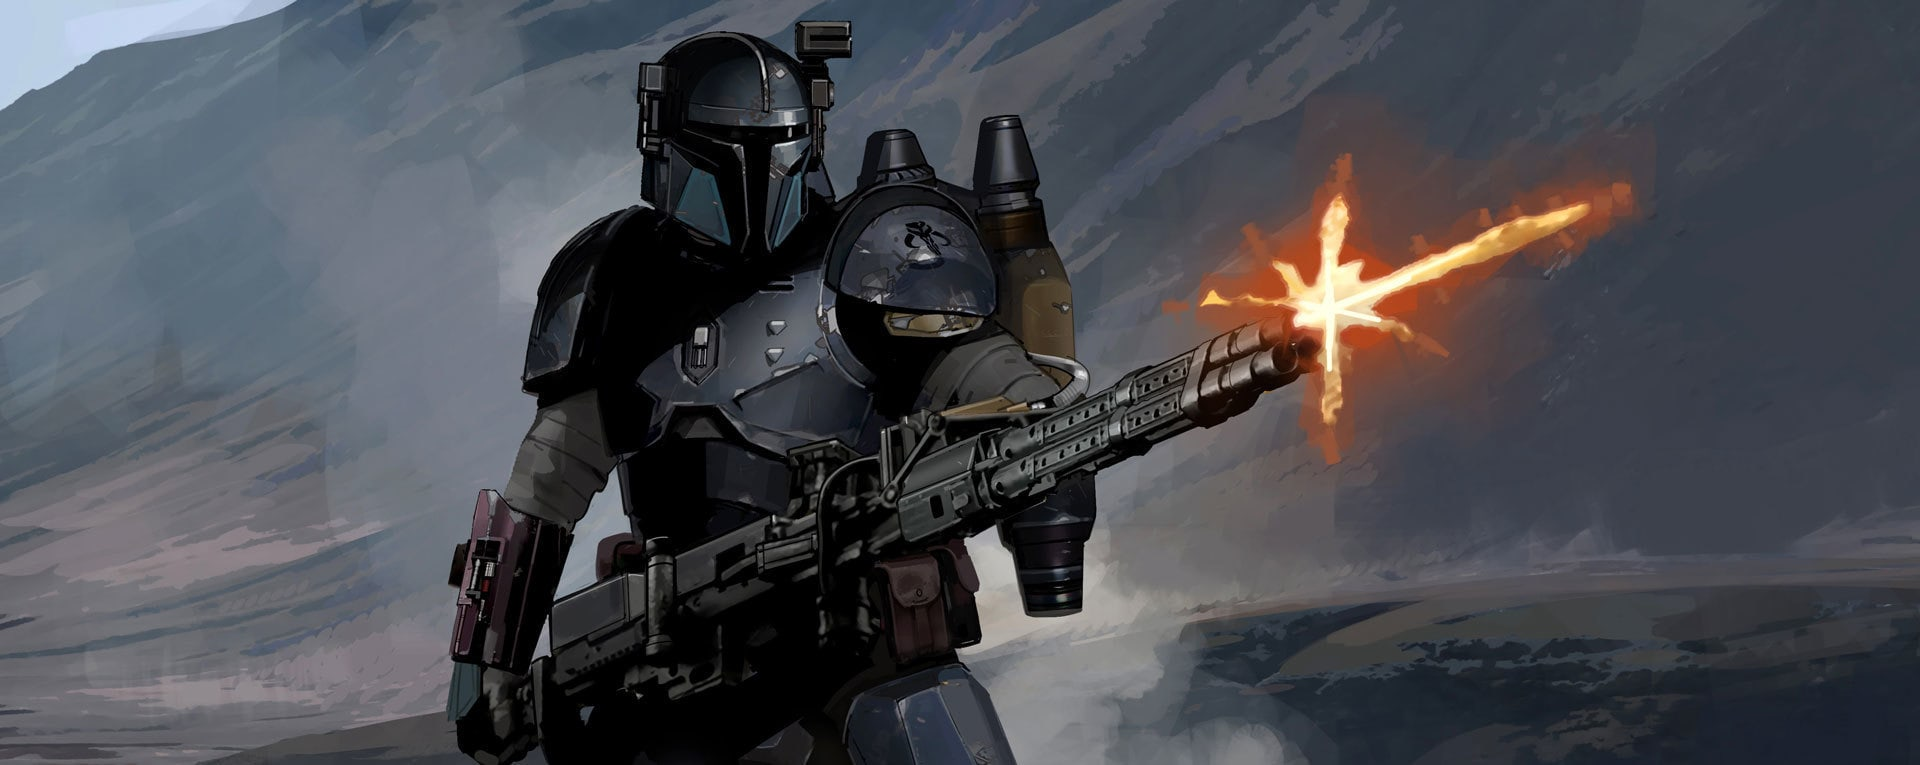 The Mandalorian: Chapter 3 Concept Art Gallery